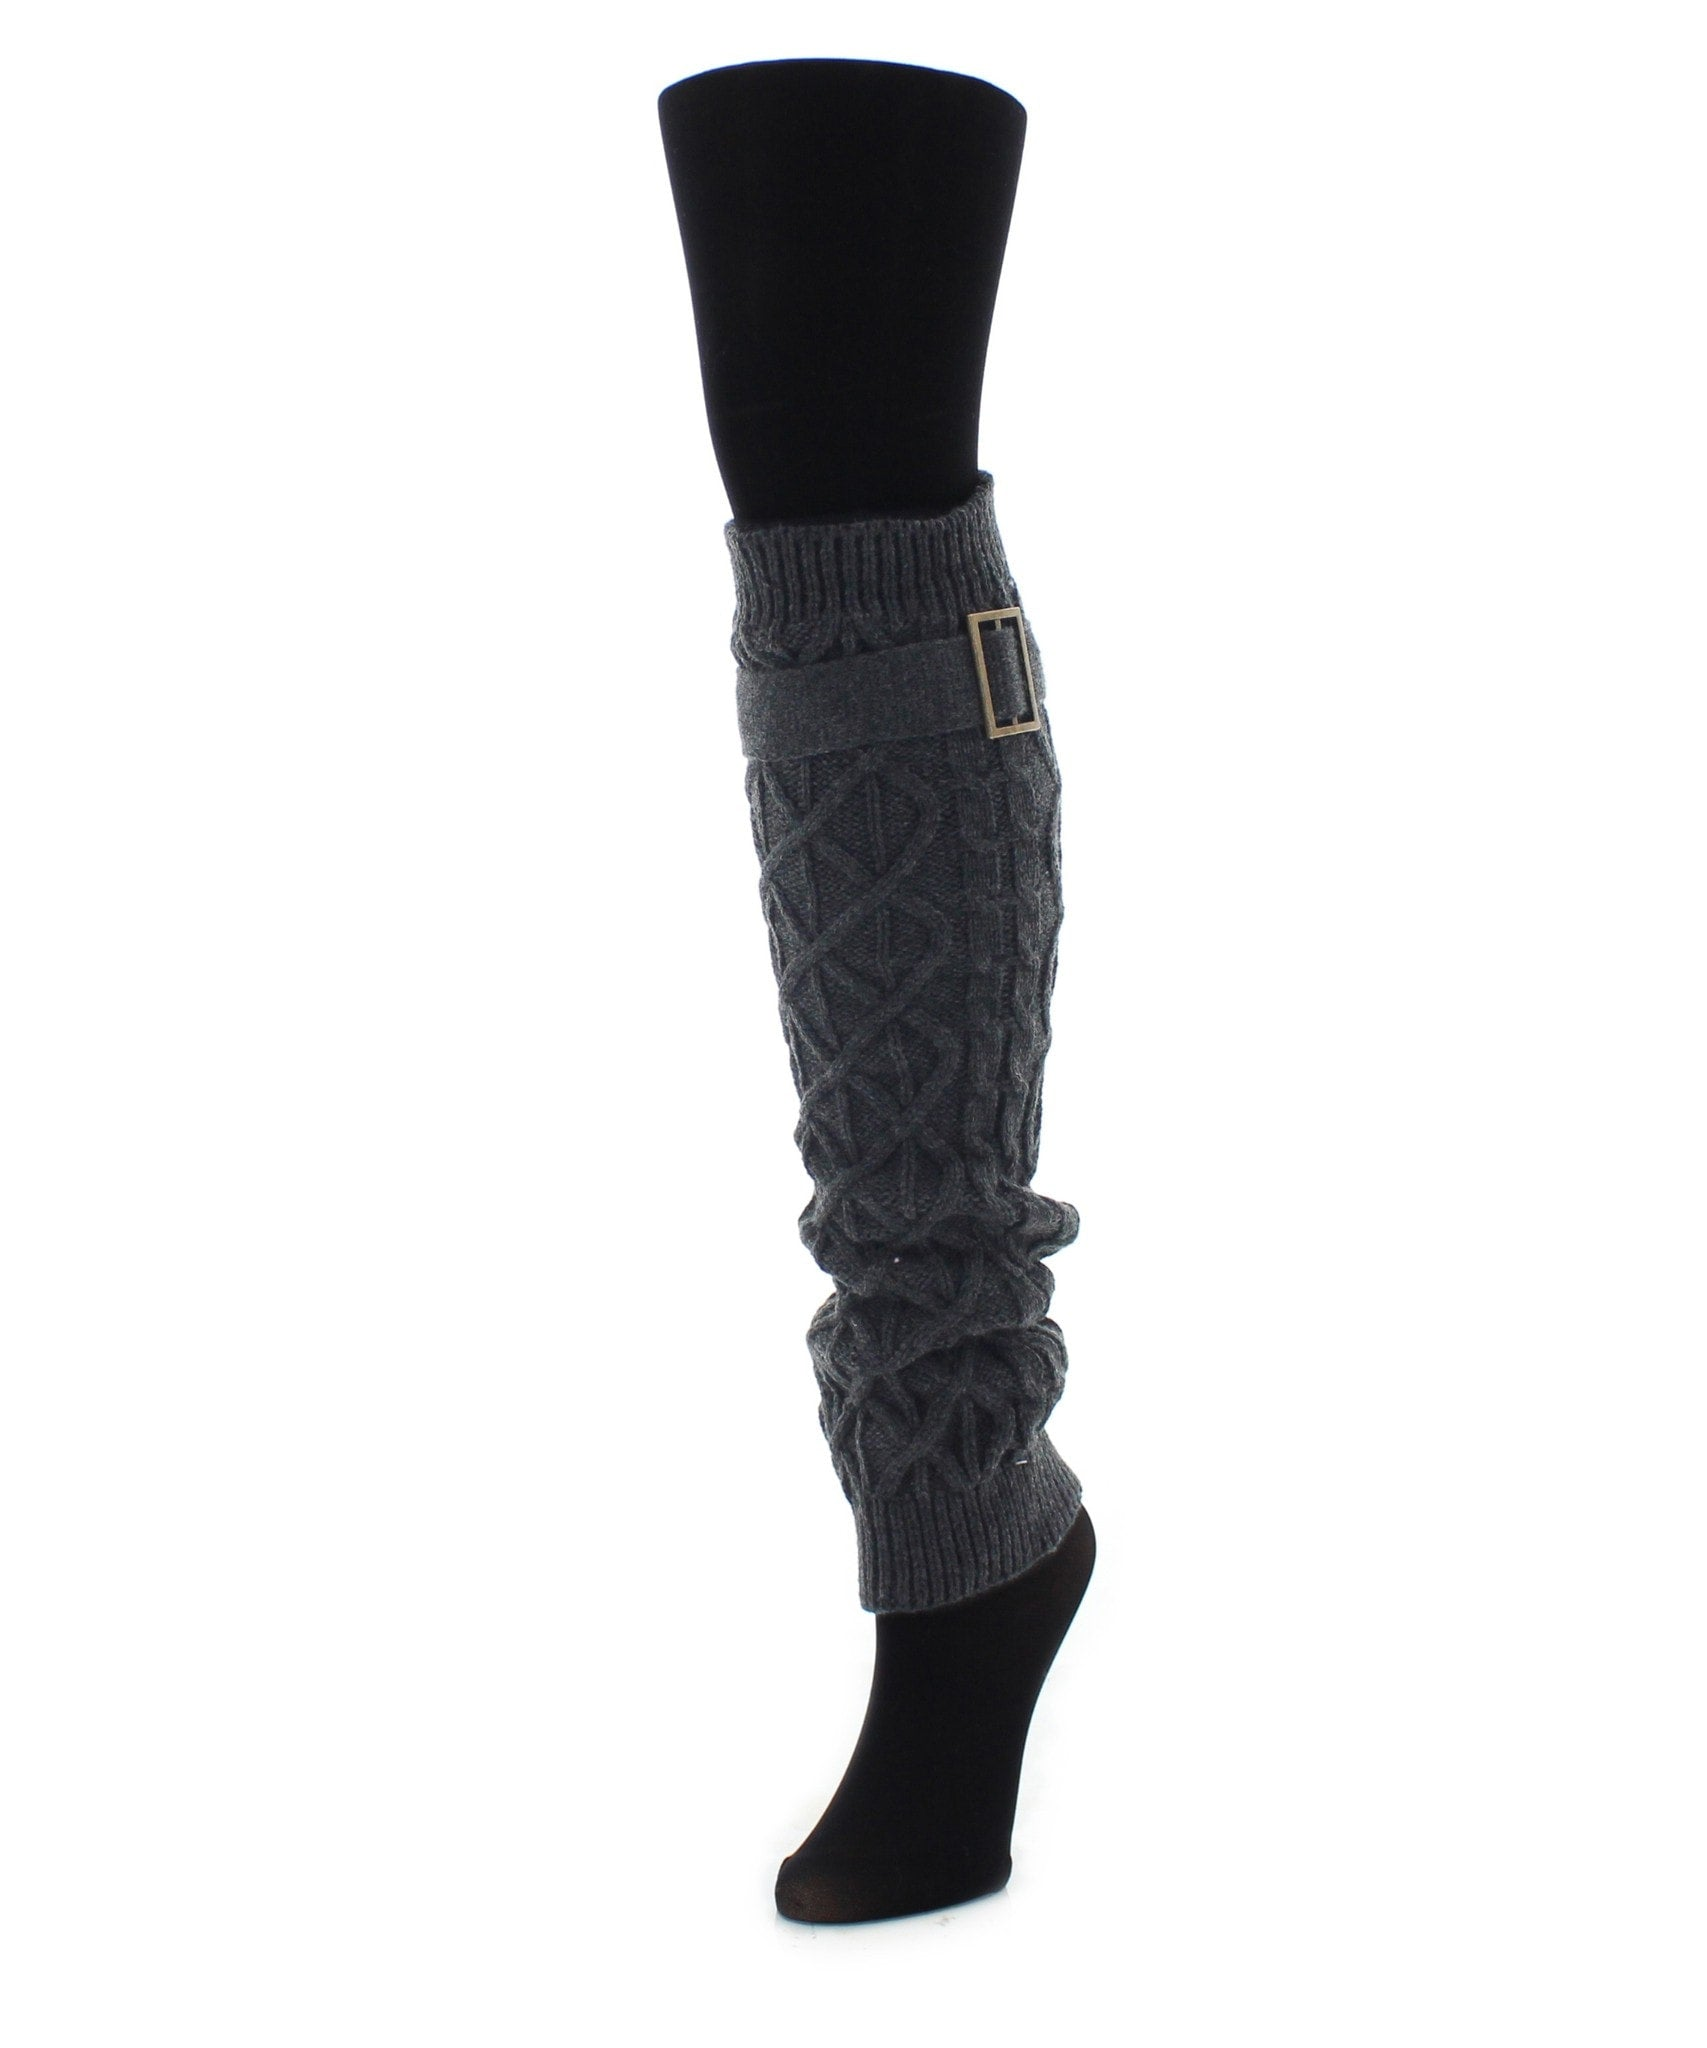 Leg Warmers | Slouchy Leg Warmers | Buckle & Braid